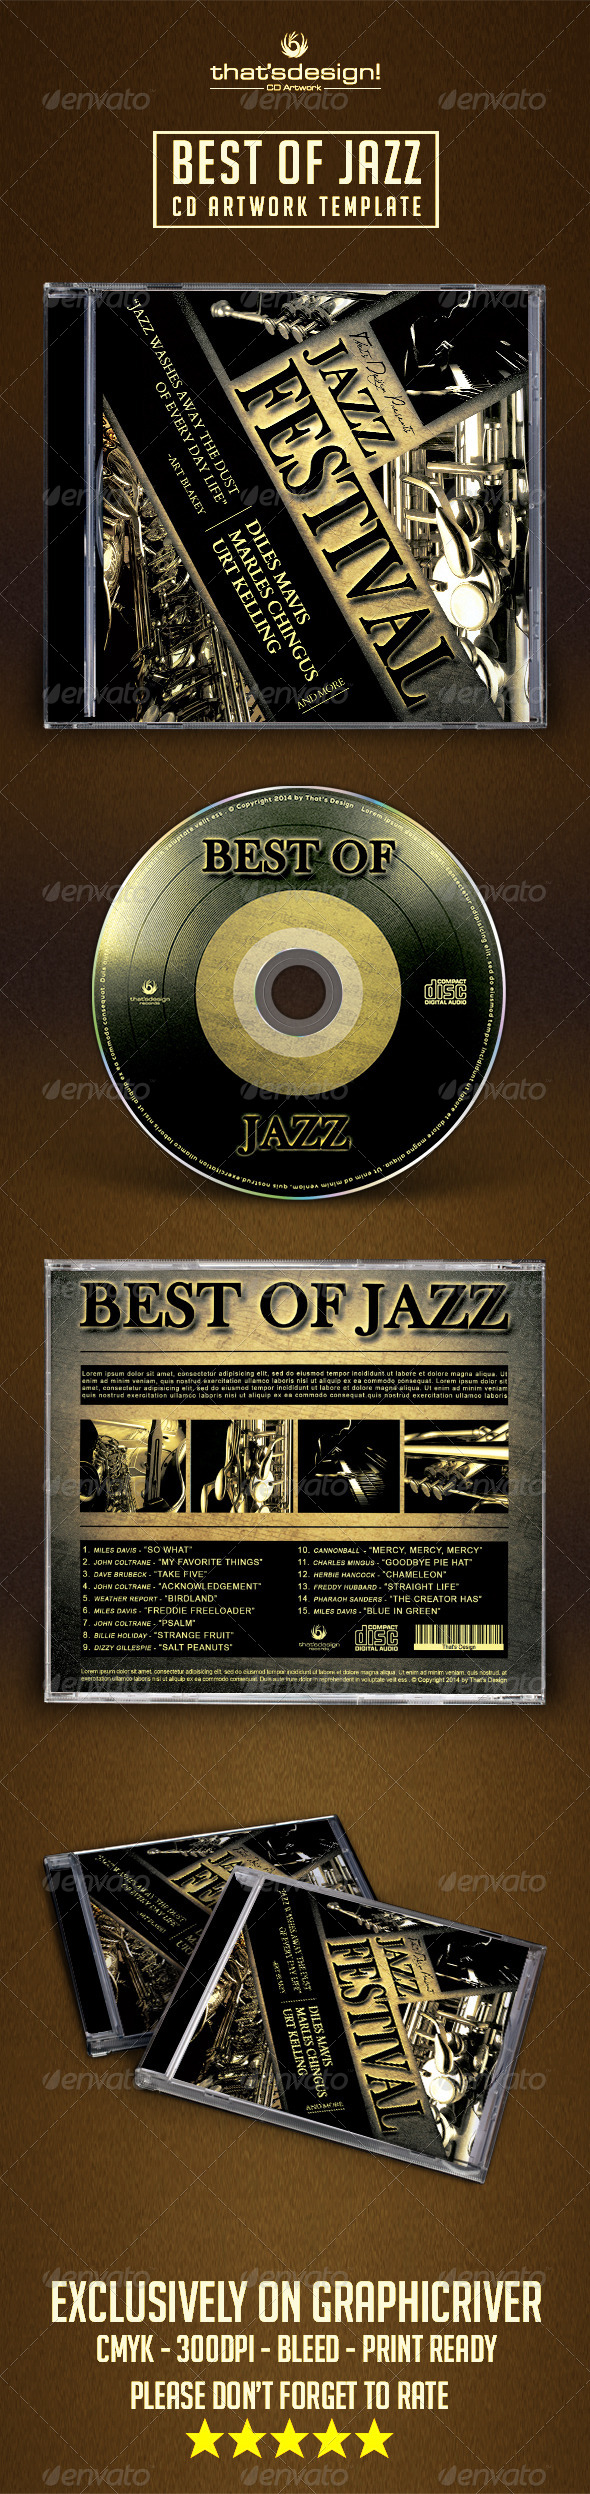 GraphicRiver Jazz CD Artwork Template 8127502